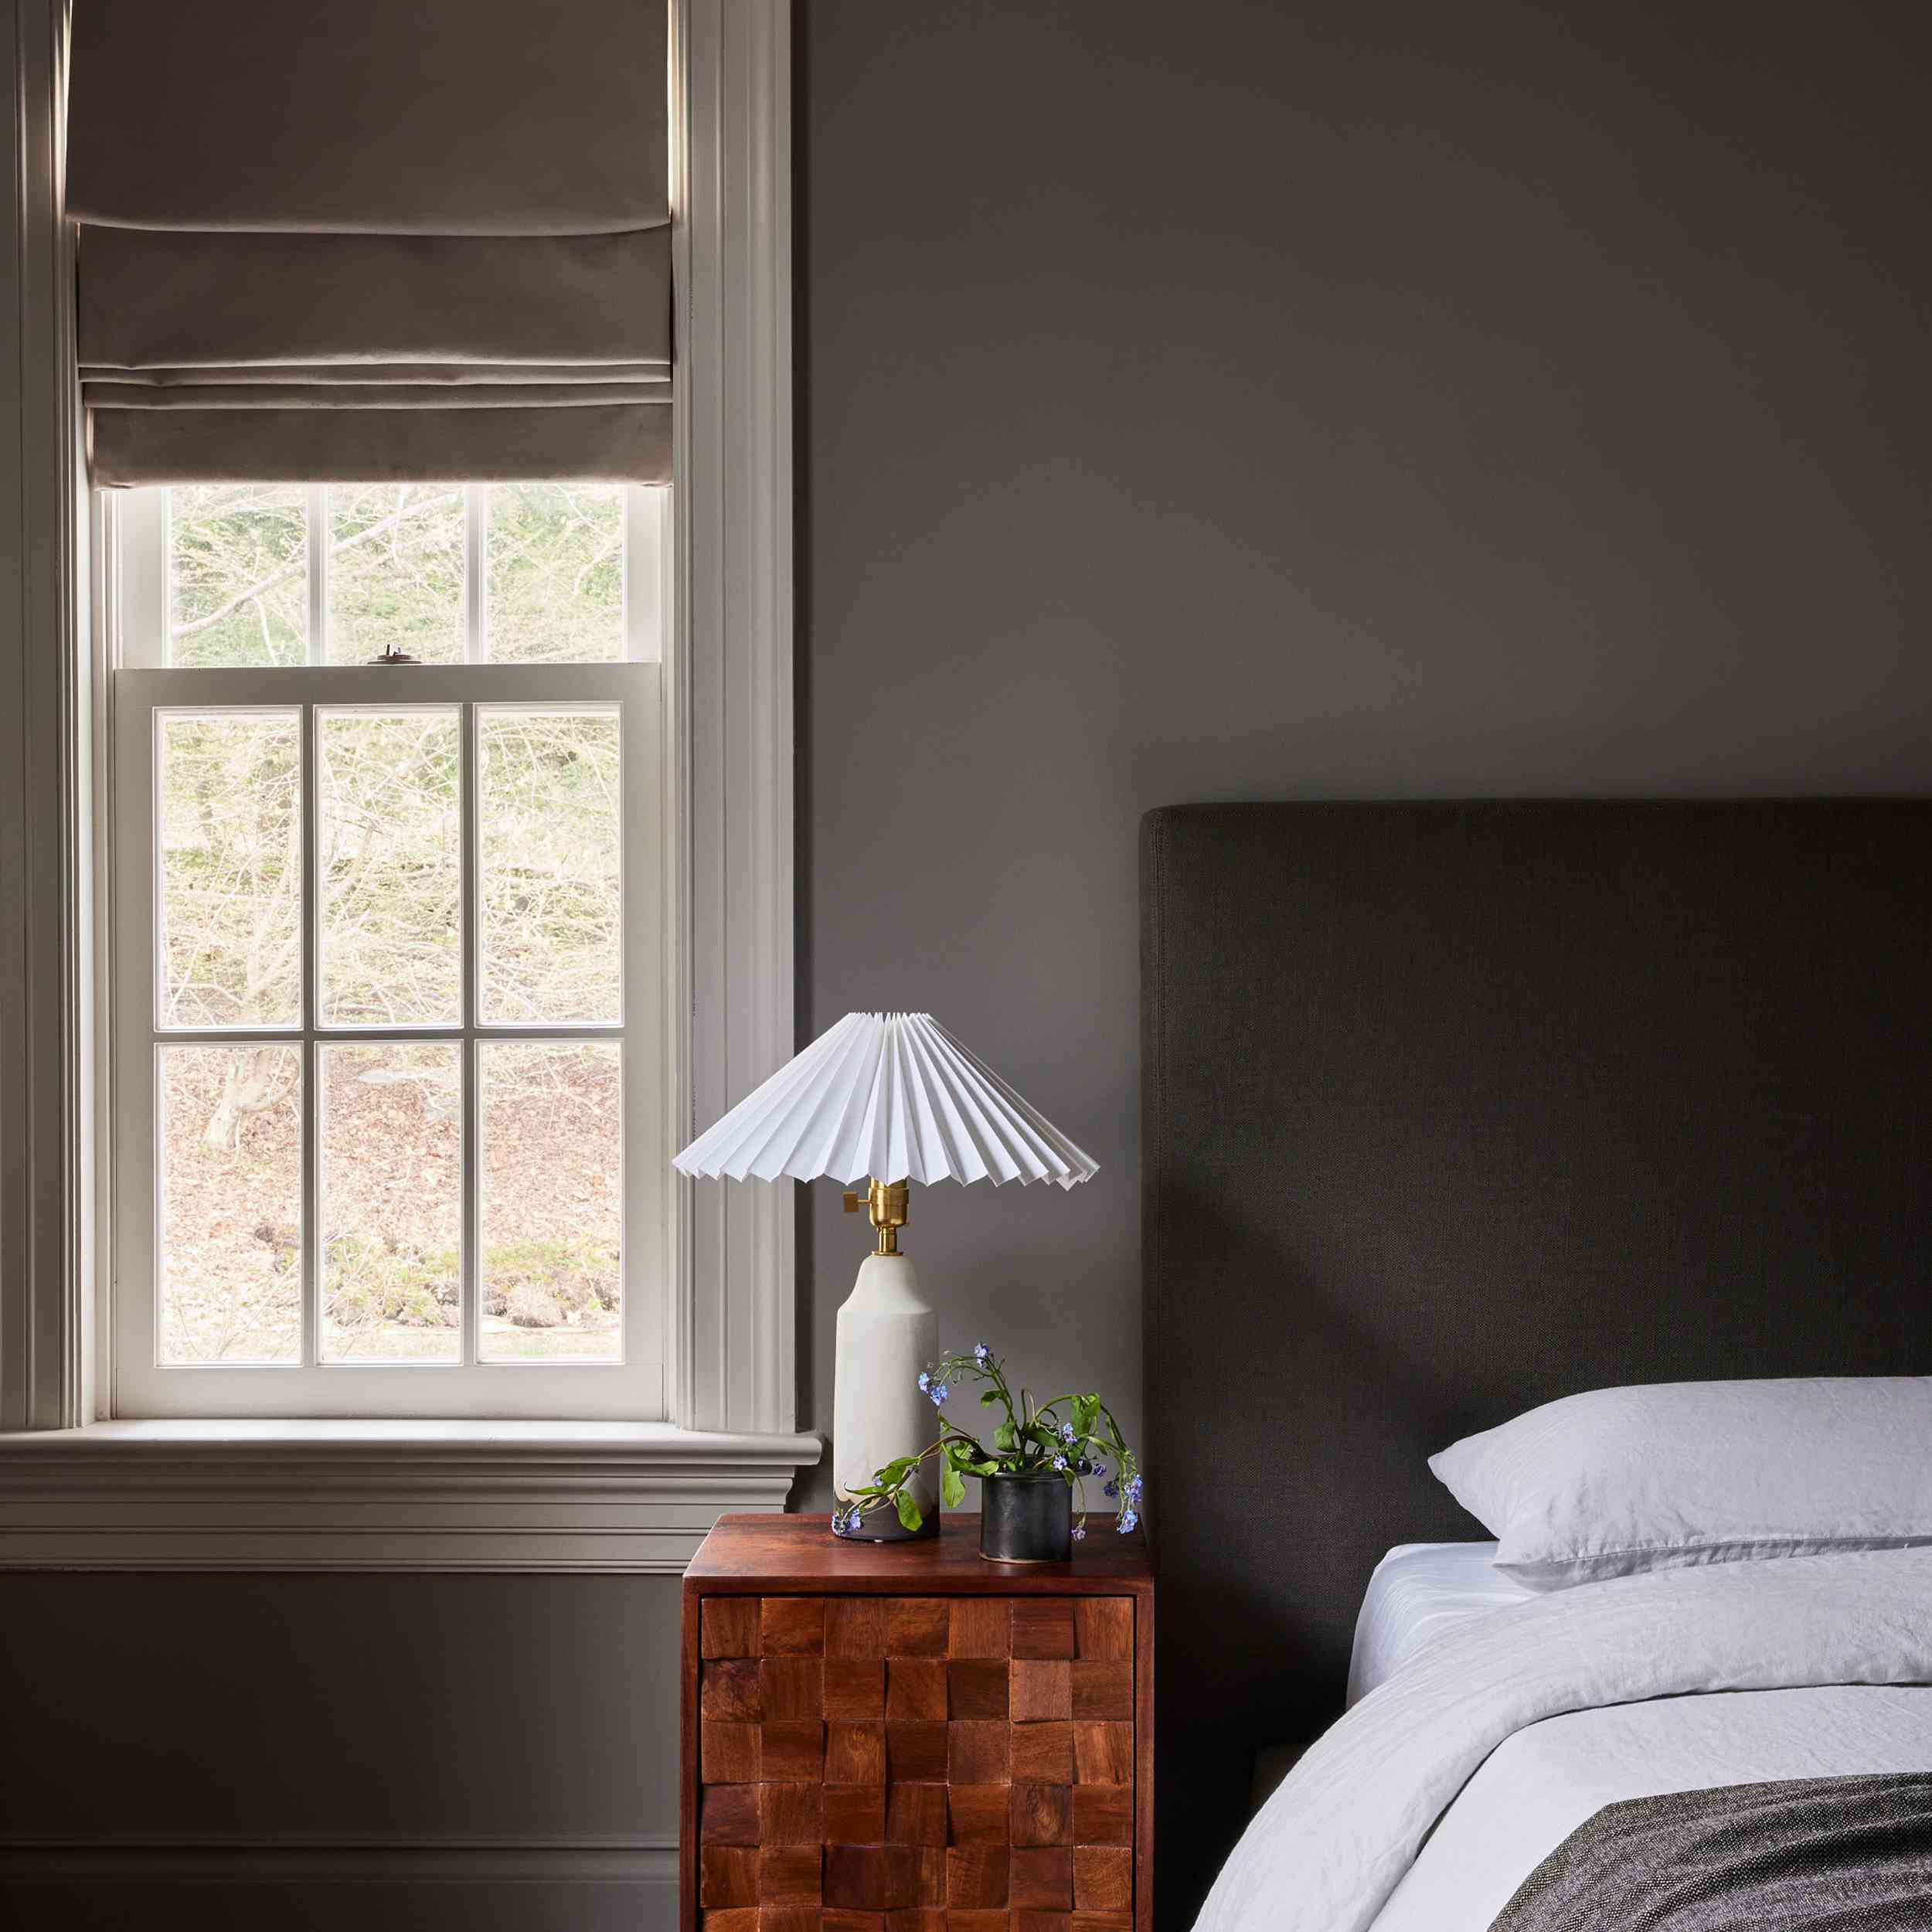 connecticut farmhouse home tour - bedroom with gray walls and headboard and wooden nightstand